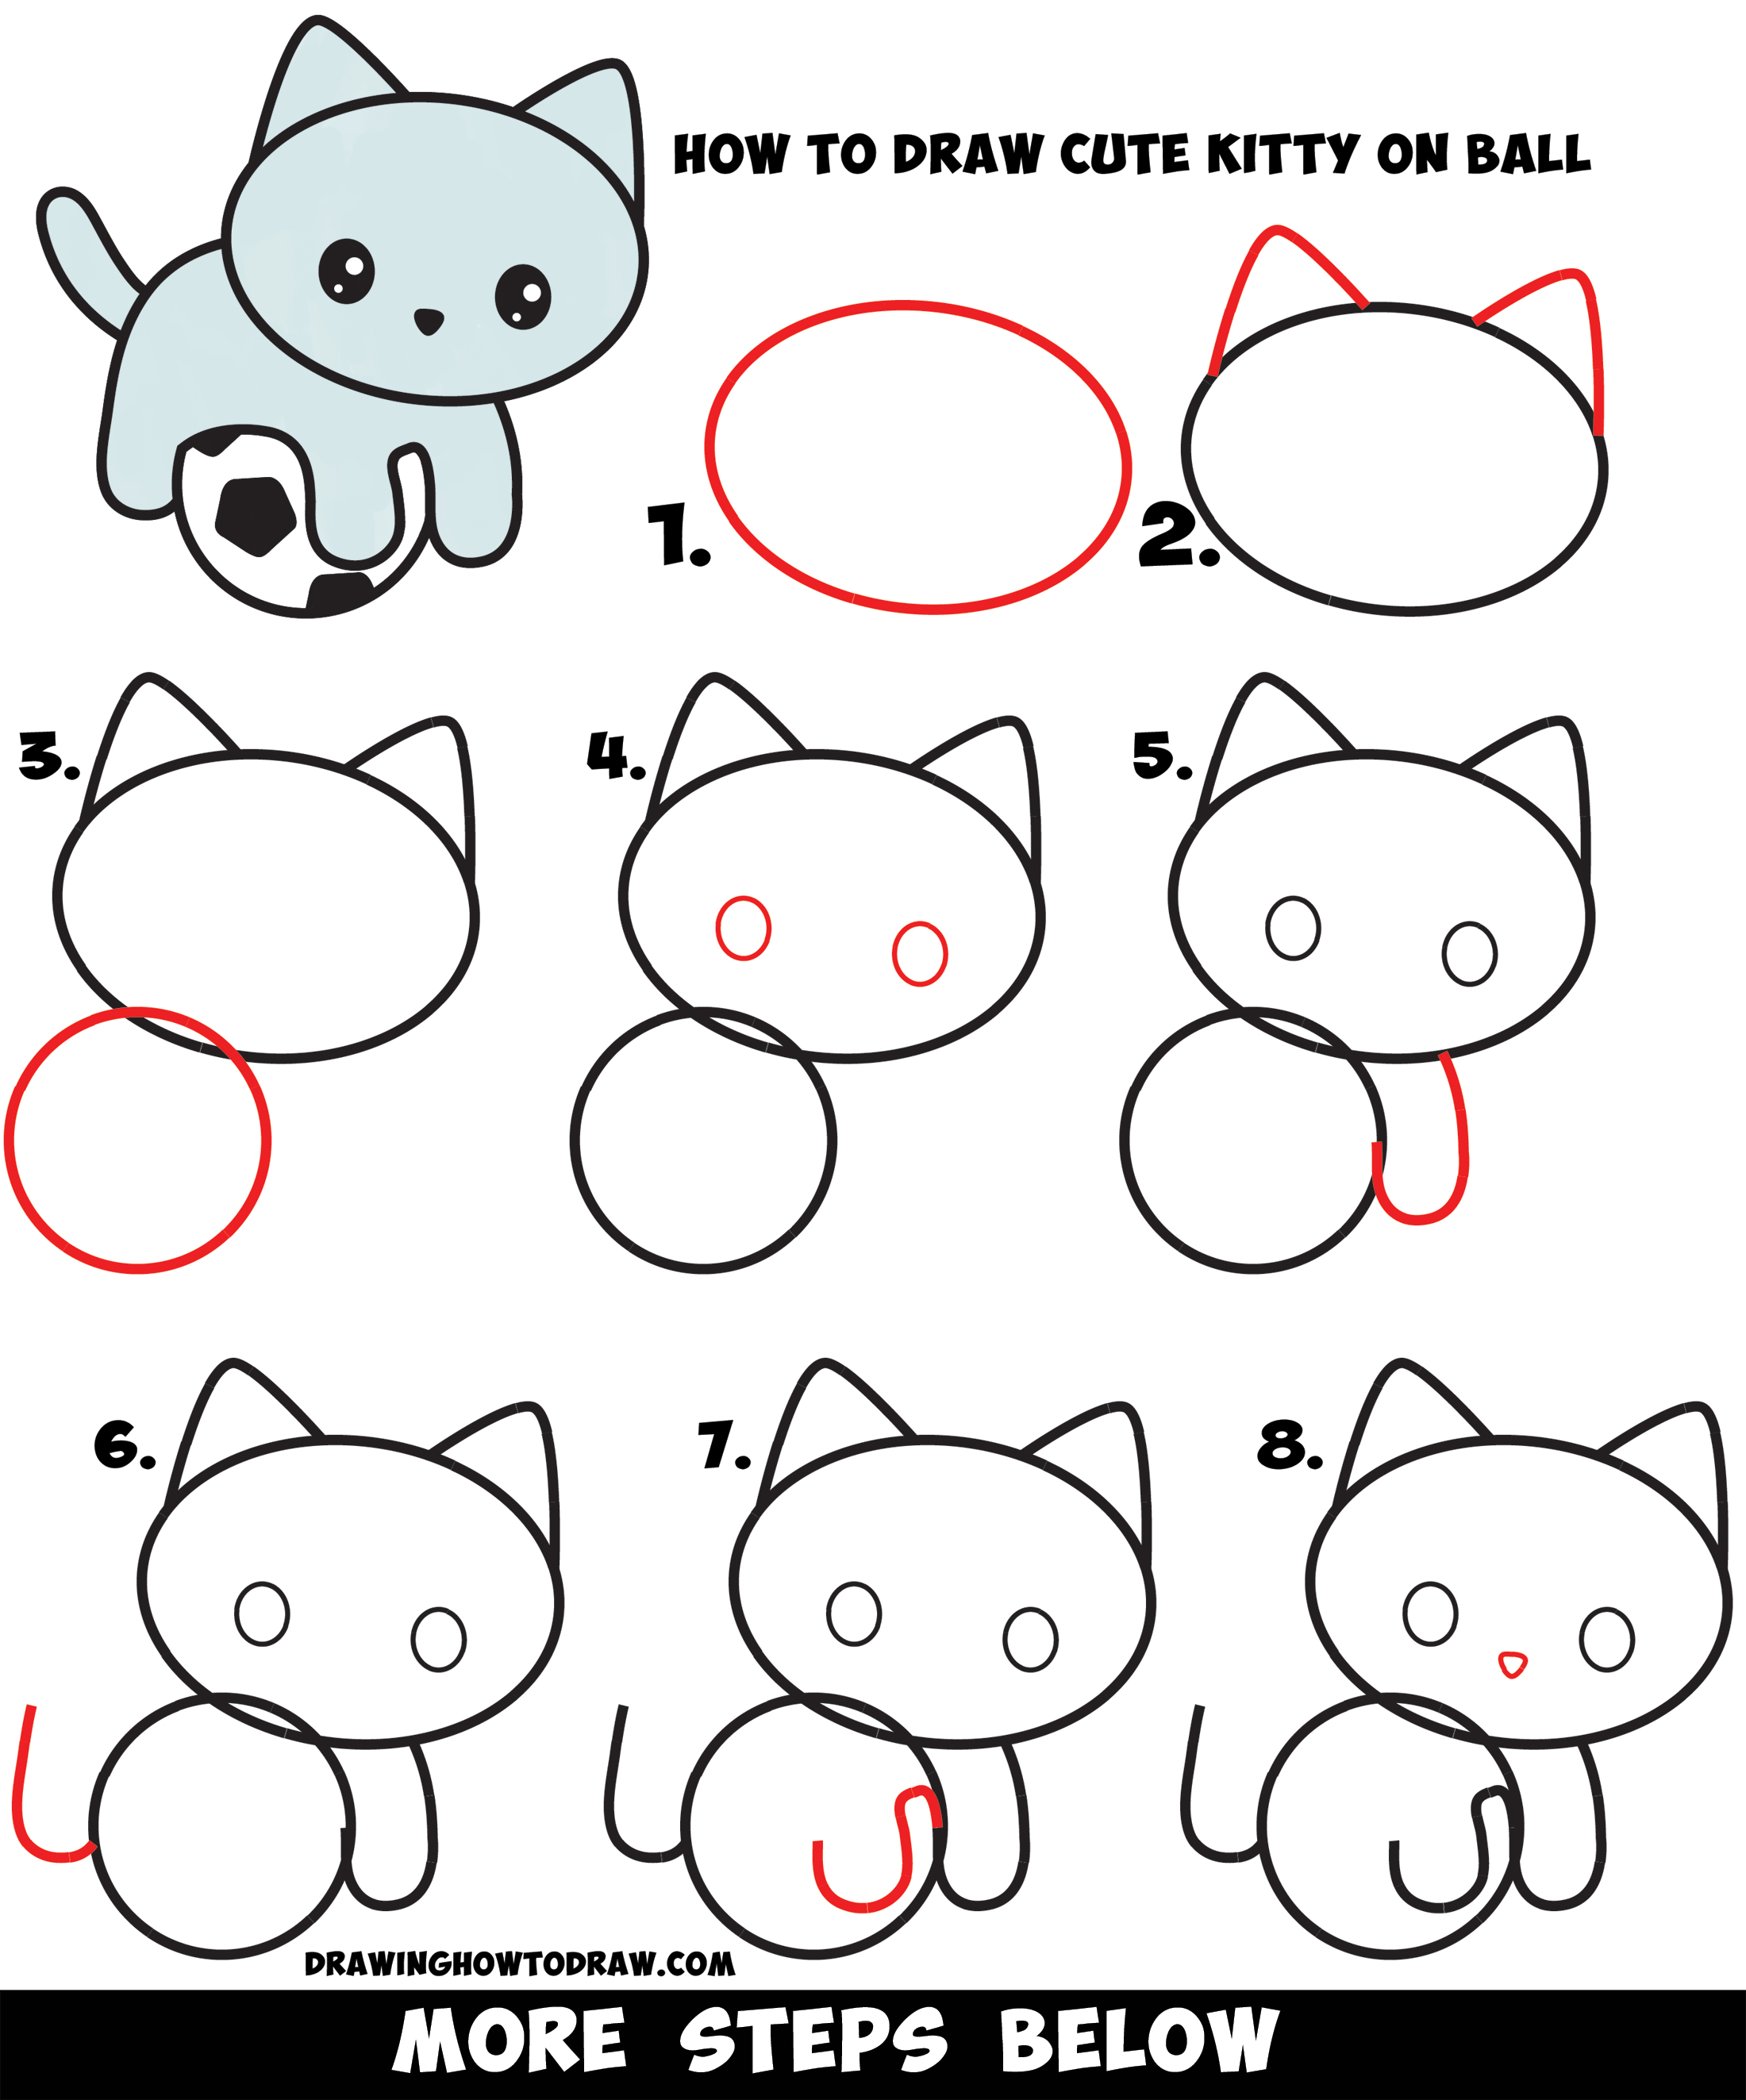 Learn How to Draw a Cute Kitten Playing on a Soccer Ball Easy Step by Step Drawing Tutorial for Kids